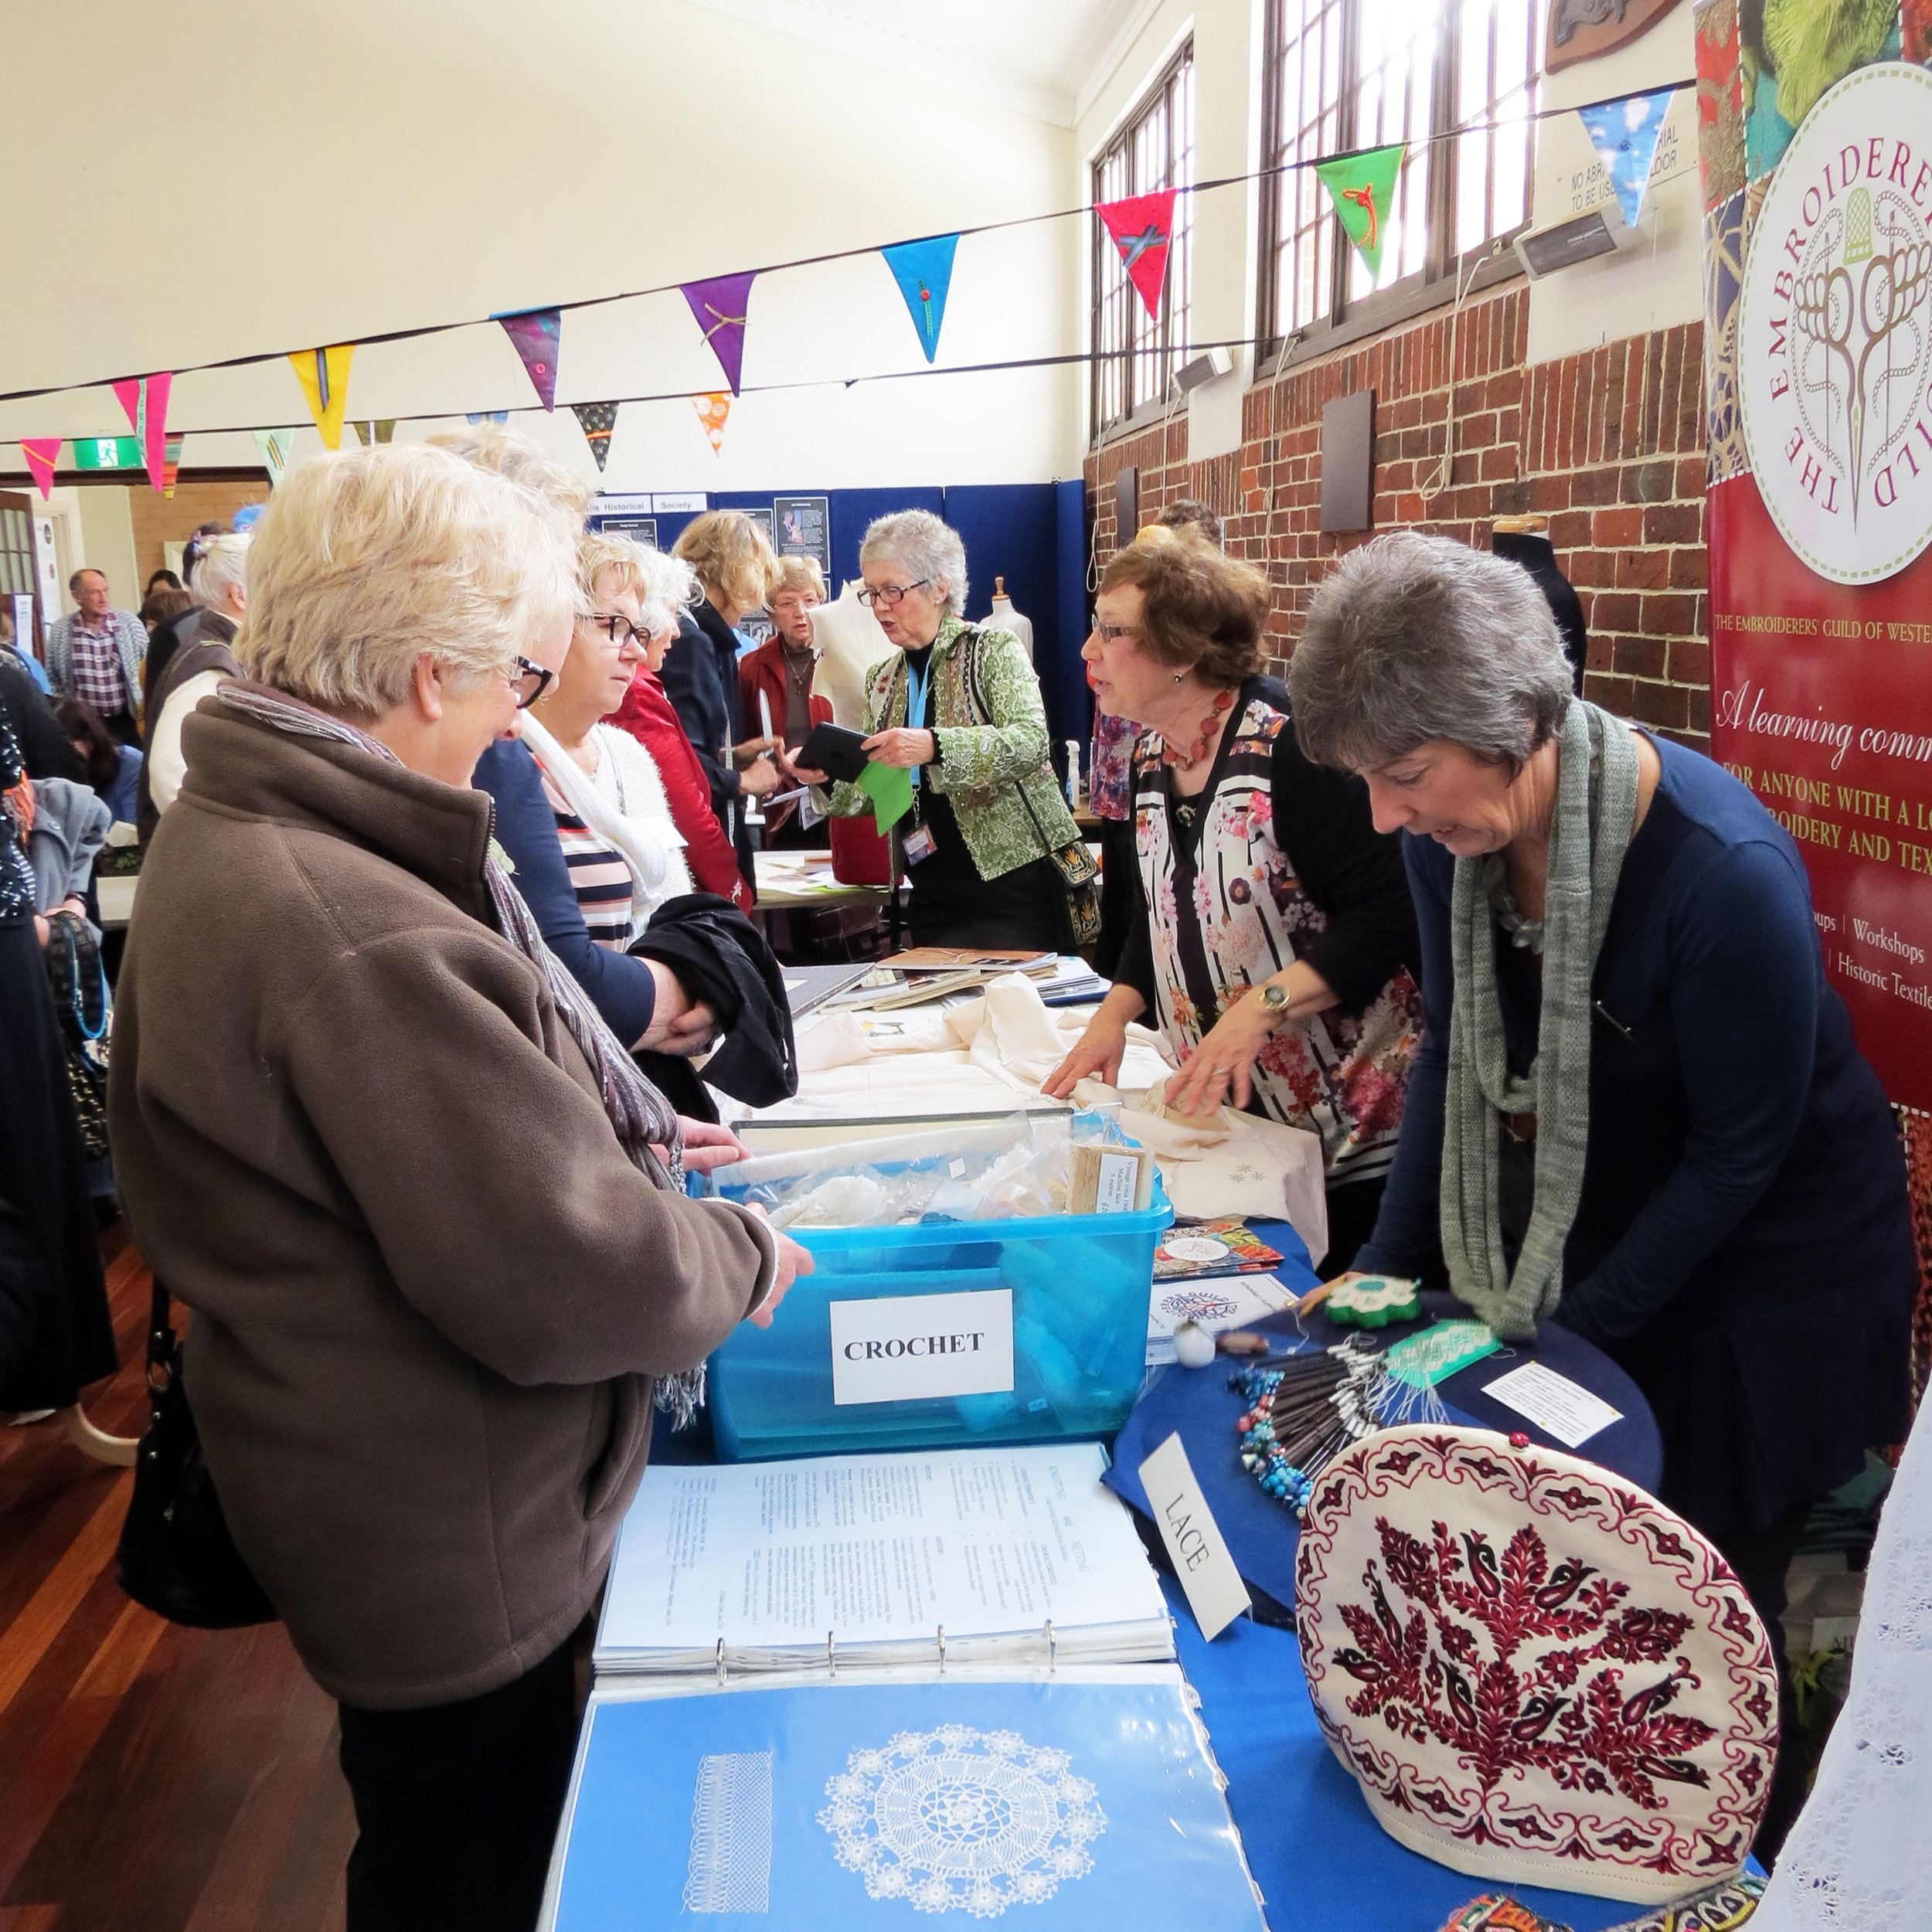 More than one way to sow - The Embroiders' Guild of Western Australia invite you to see an exquisite showcase of flora inspired textiles. Drop in for a short textile conservation talk at 10.30am or 2.30pm, notes supplied.10am - 3pm | Display10.30am & 2.30pm | Talks FREE Mundaring Hall